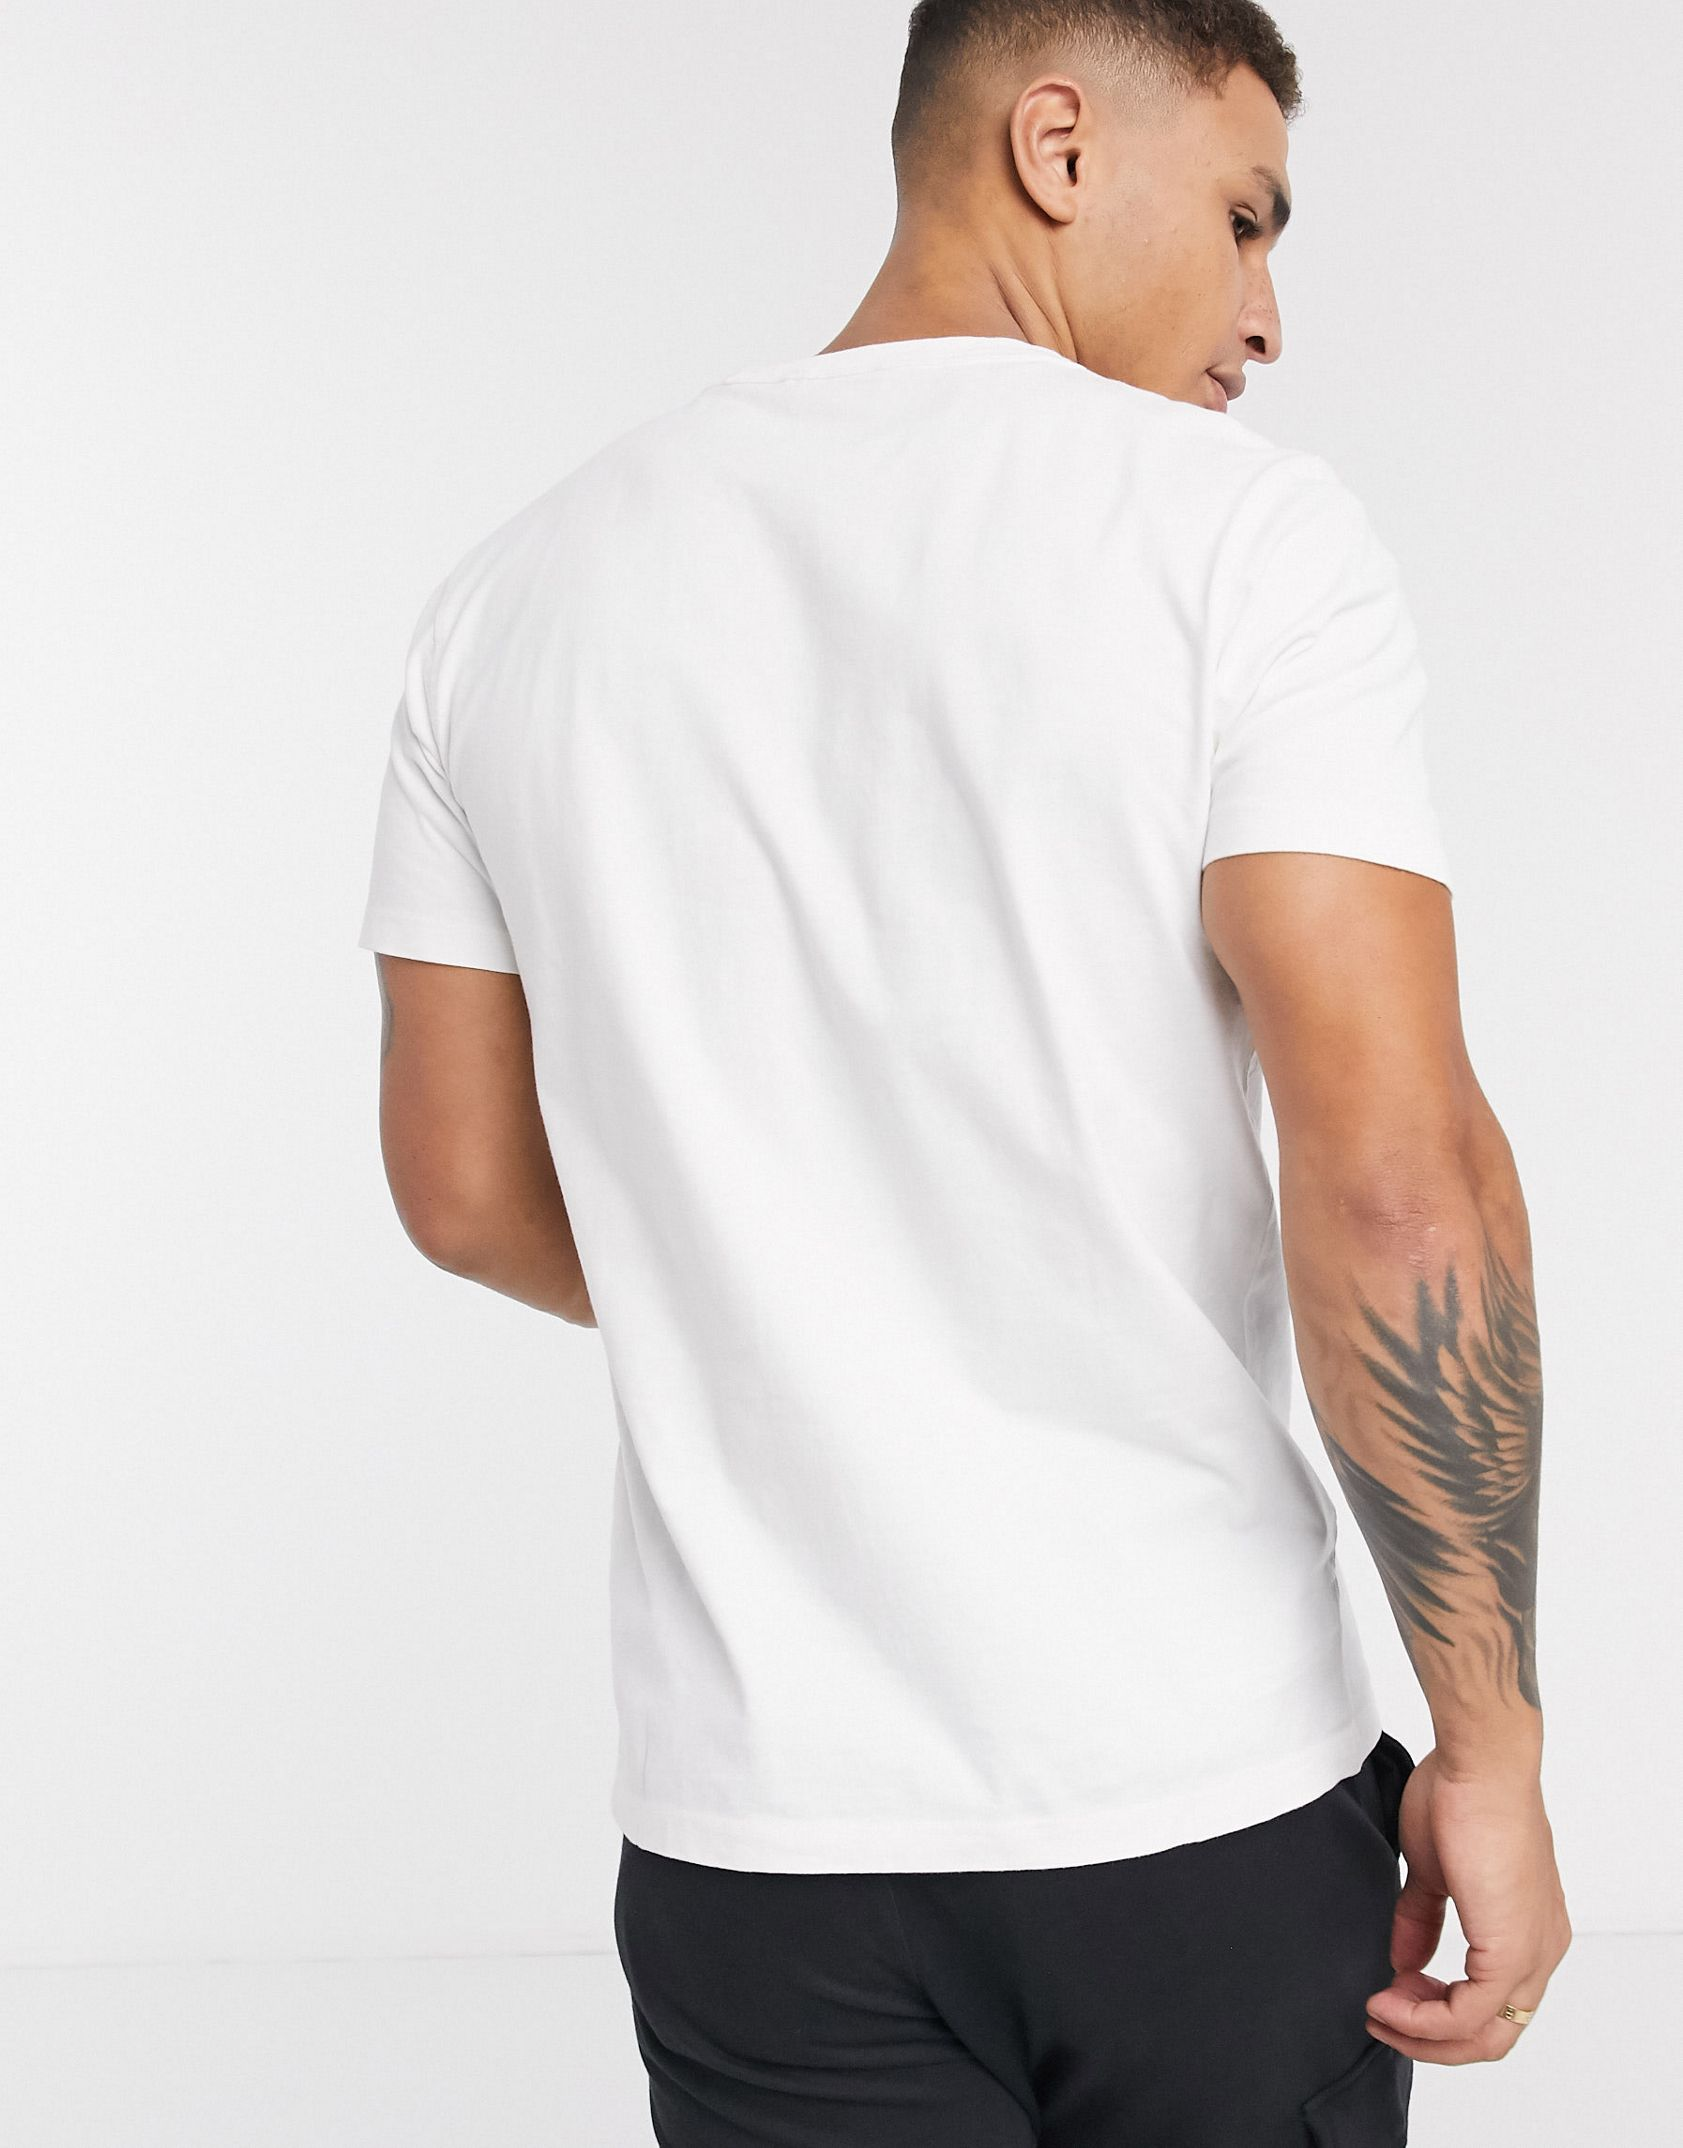 Selected Homme t-shirt with logo in white - ASOS Price Checker